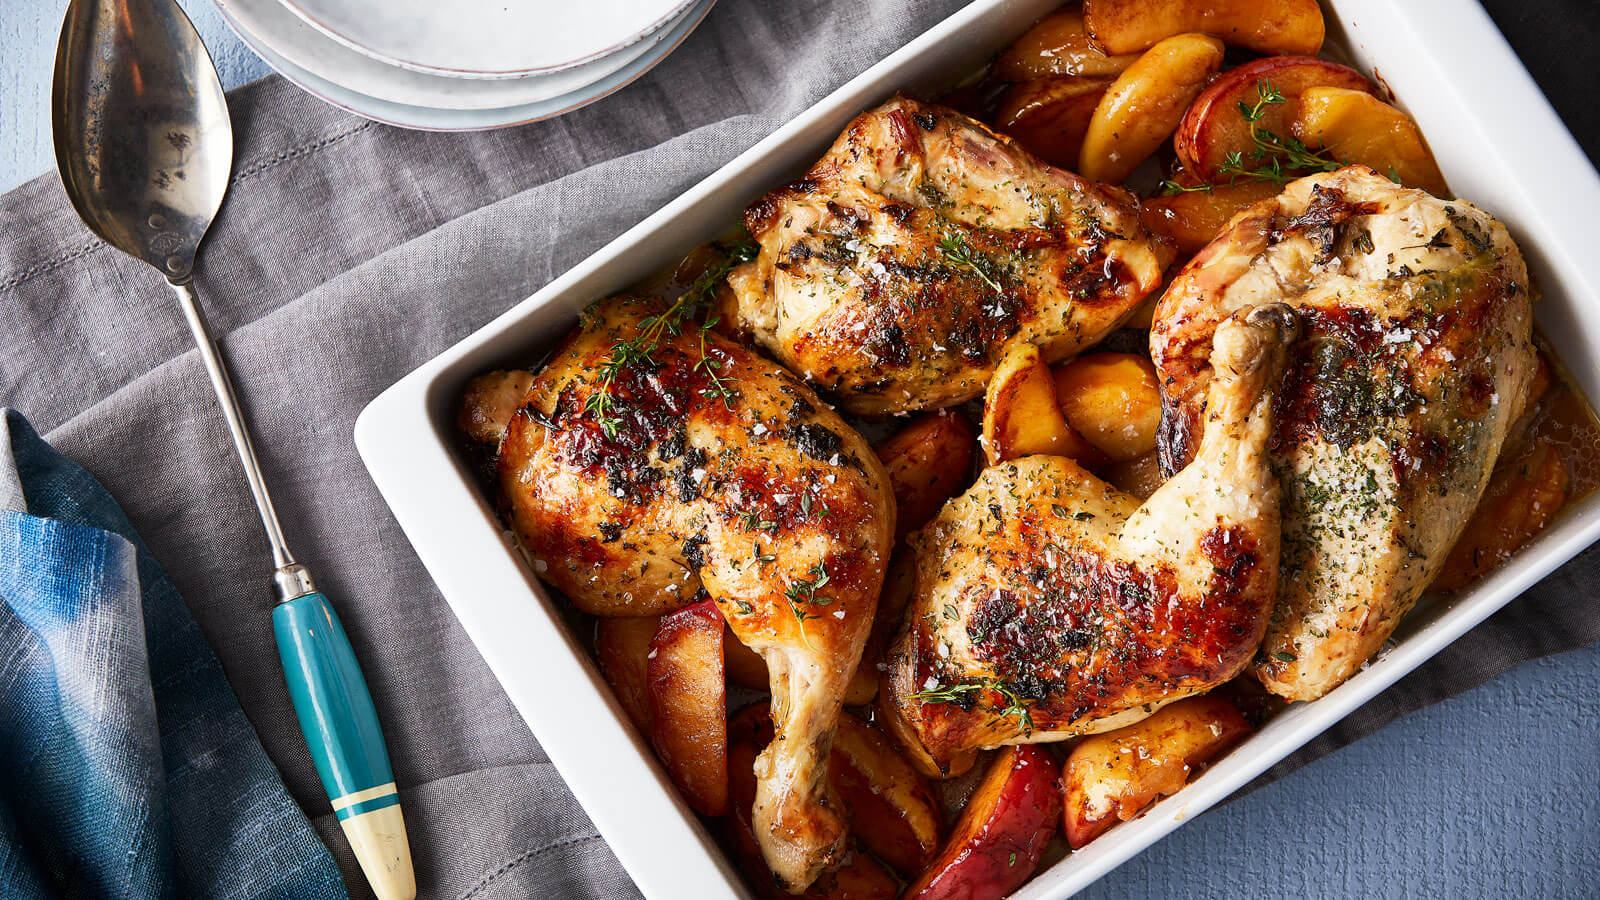 baked-chicken-with-cinnamon-apples